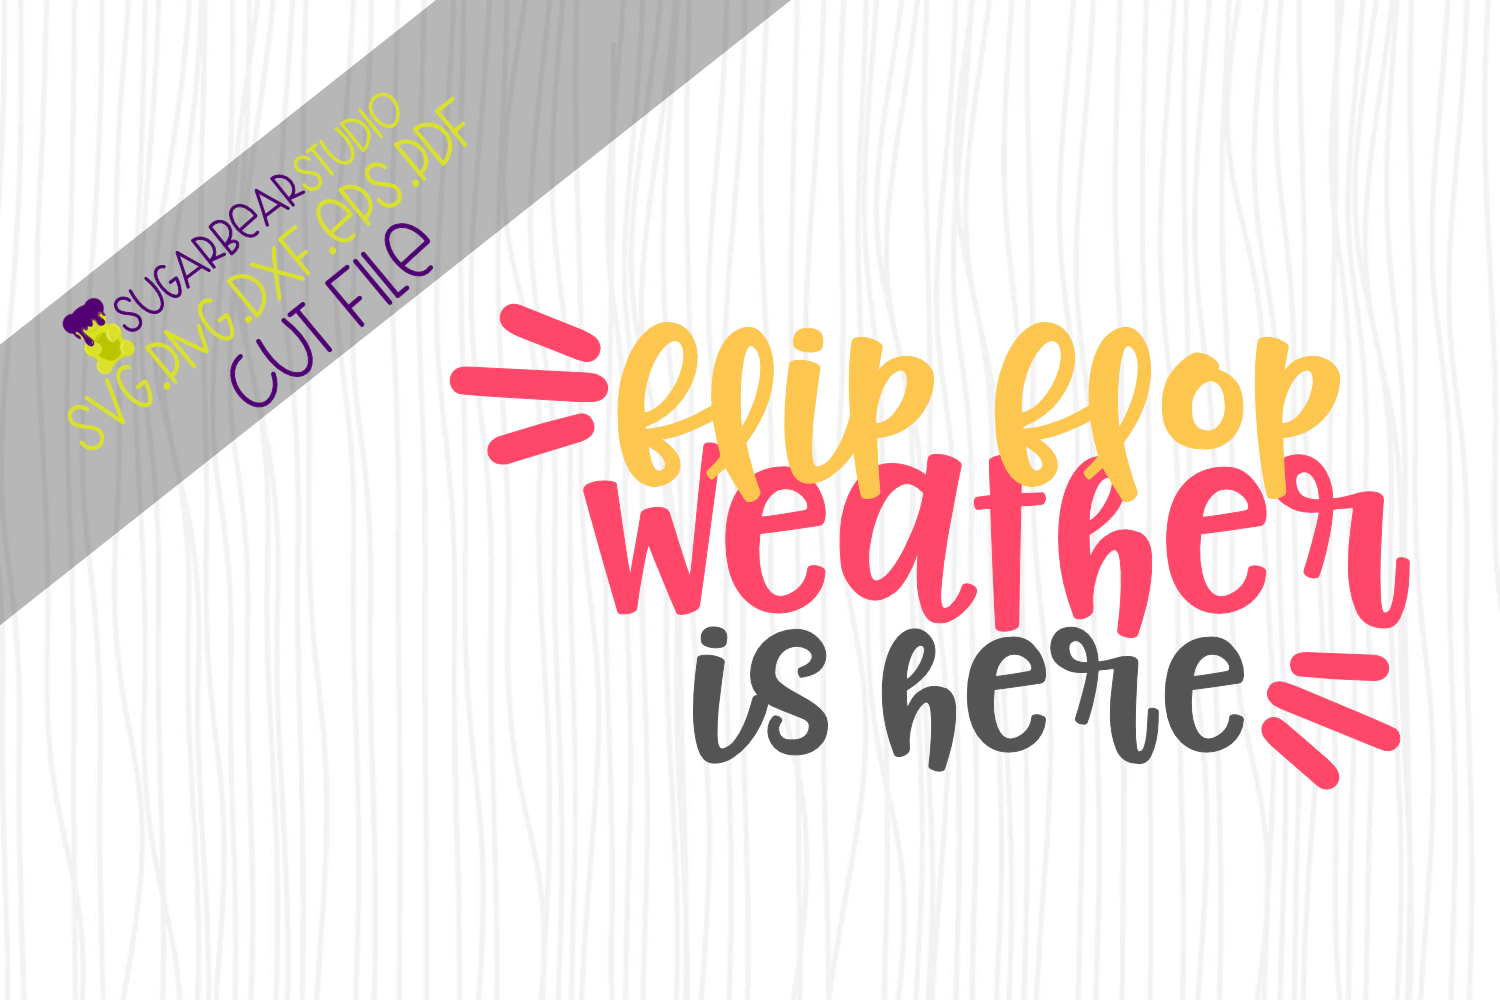 Download Free Flip Flop Weather Is Here Svg Grafico Por Sugarbearstudio for Cricut Explore, Silhouette and other cutting machines.